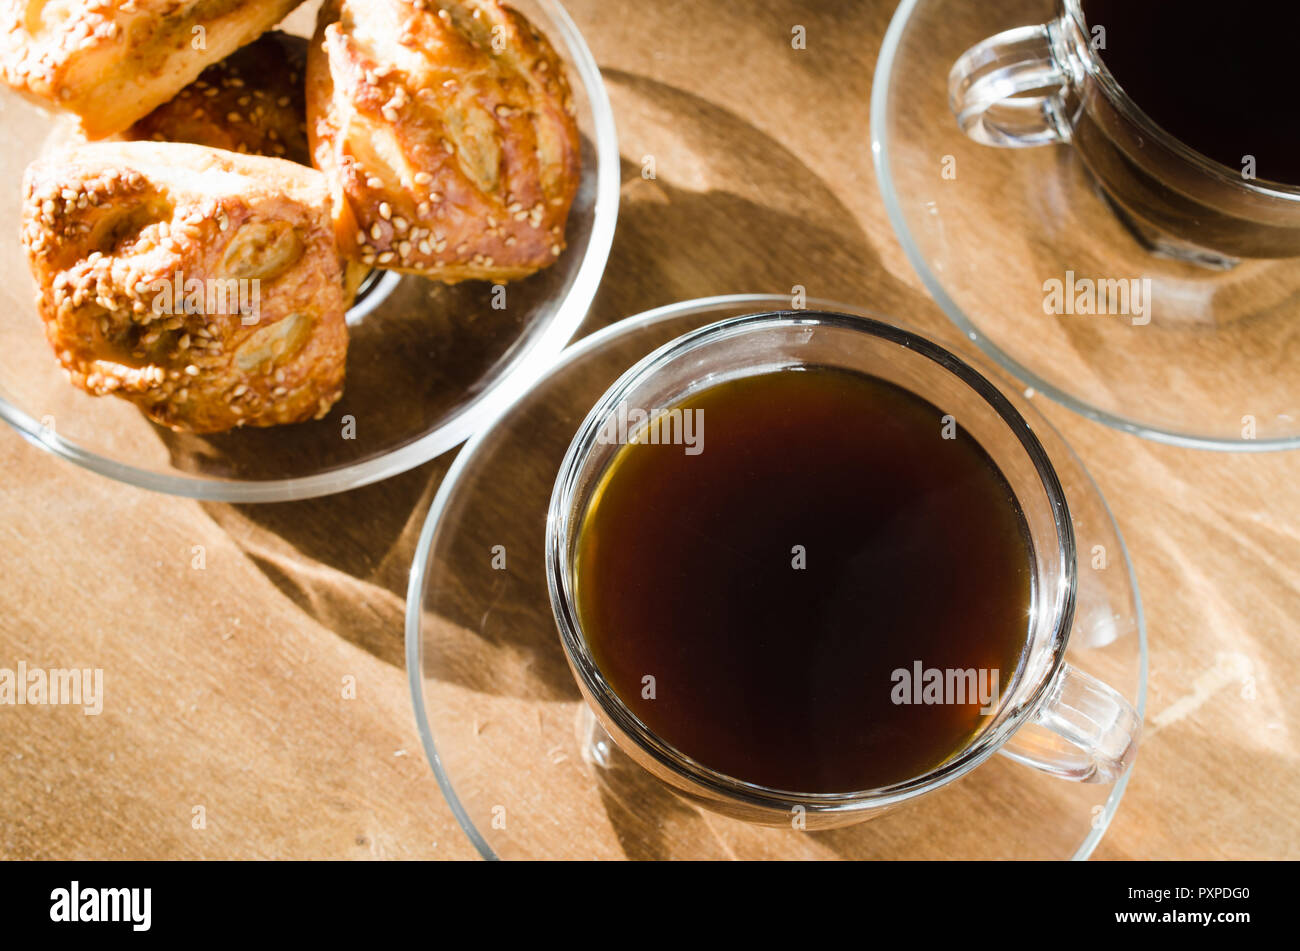 Two cups of coffee and pies on wooden table. Coffee break. Good morning concept. - Stock Image